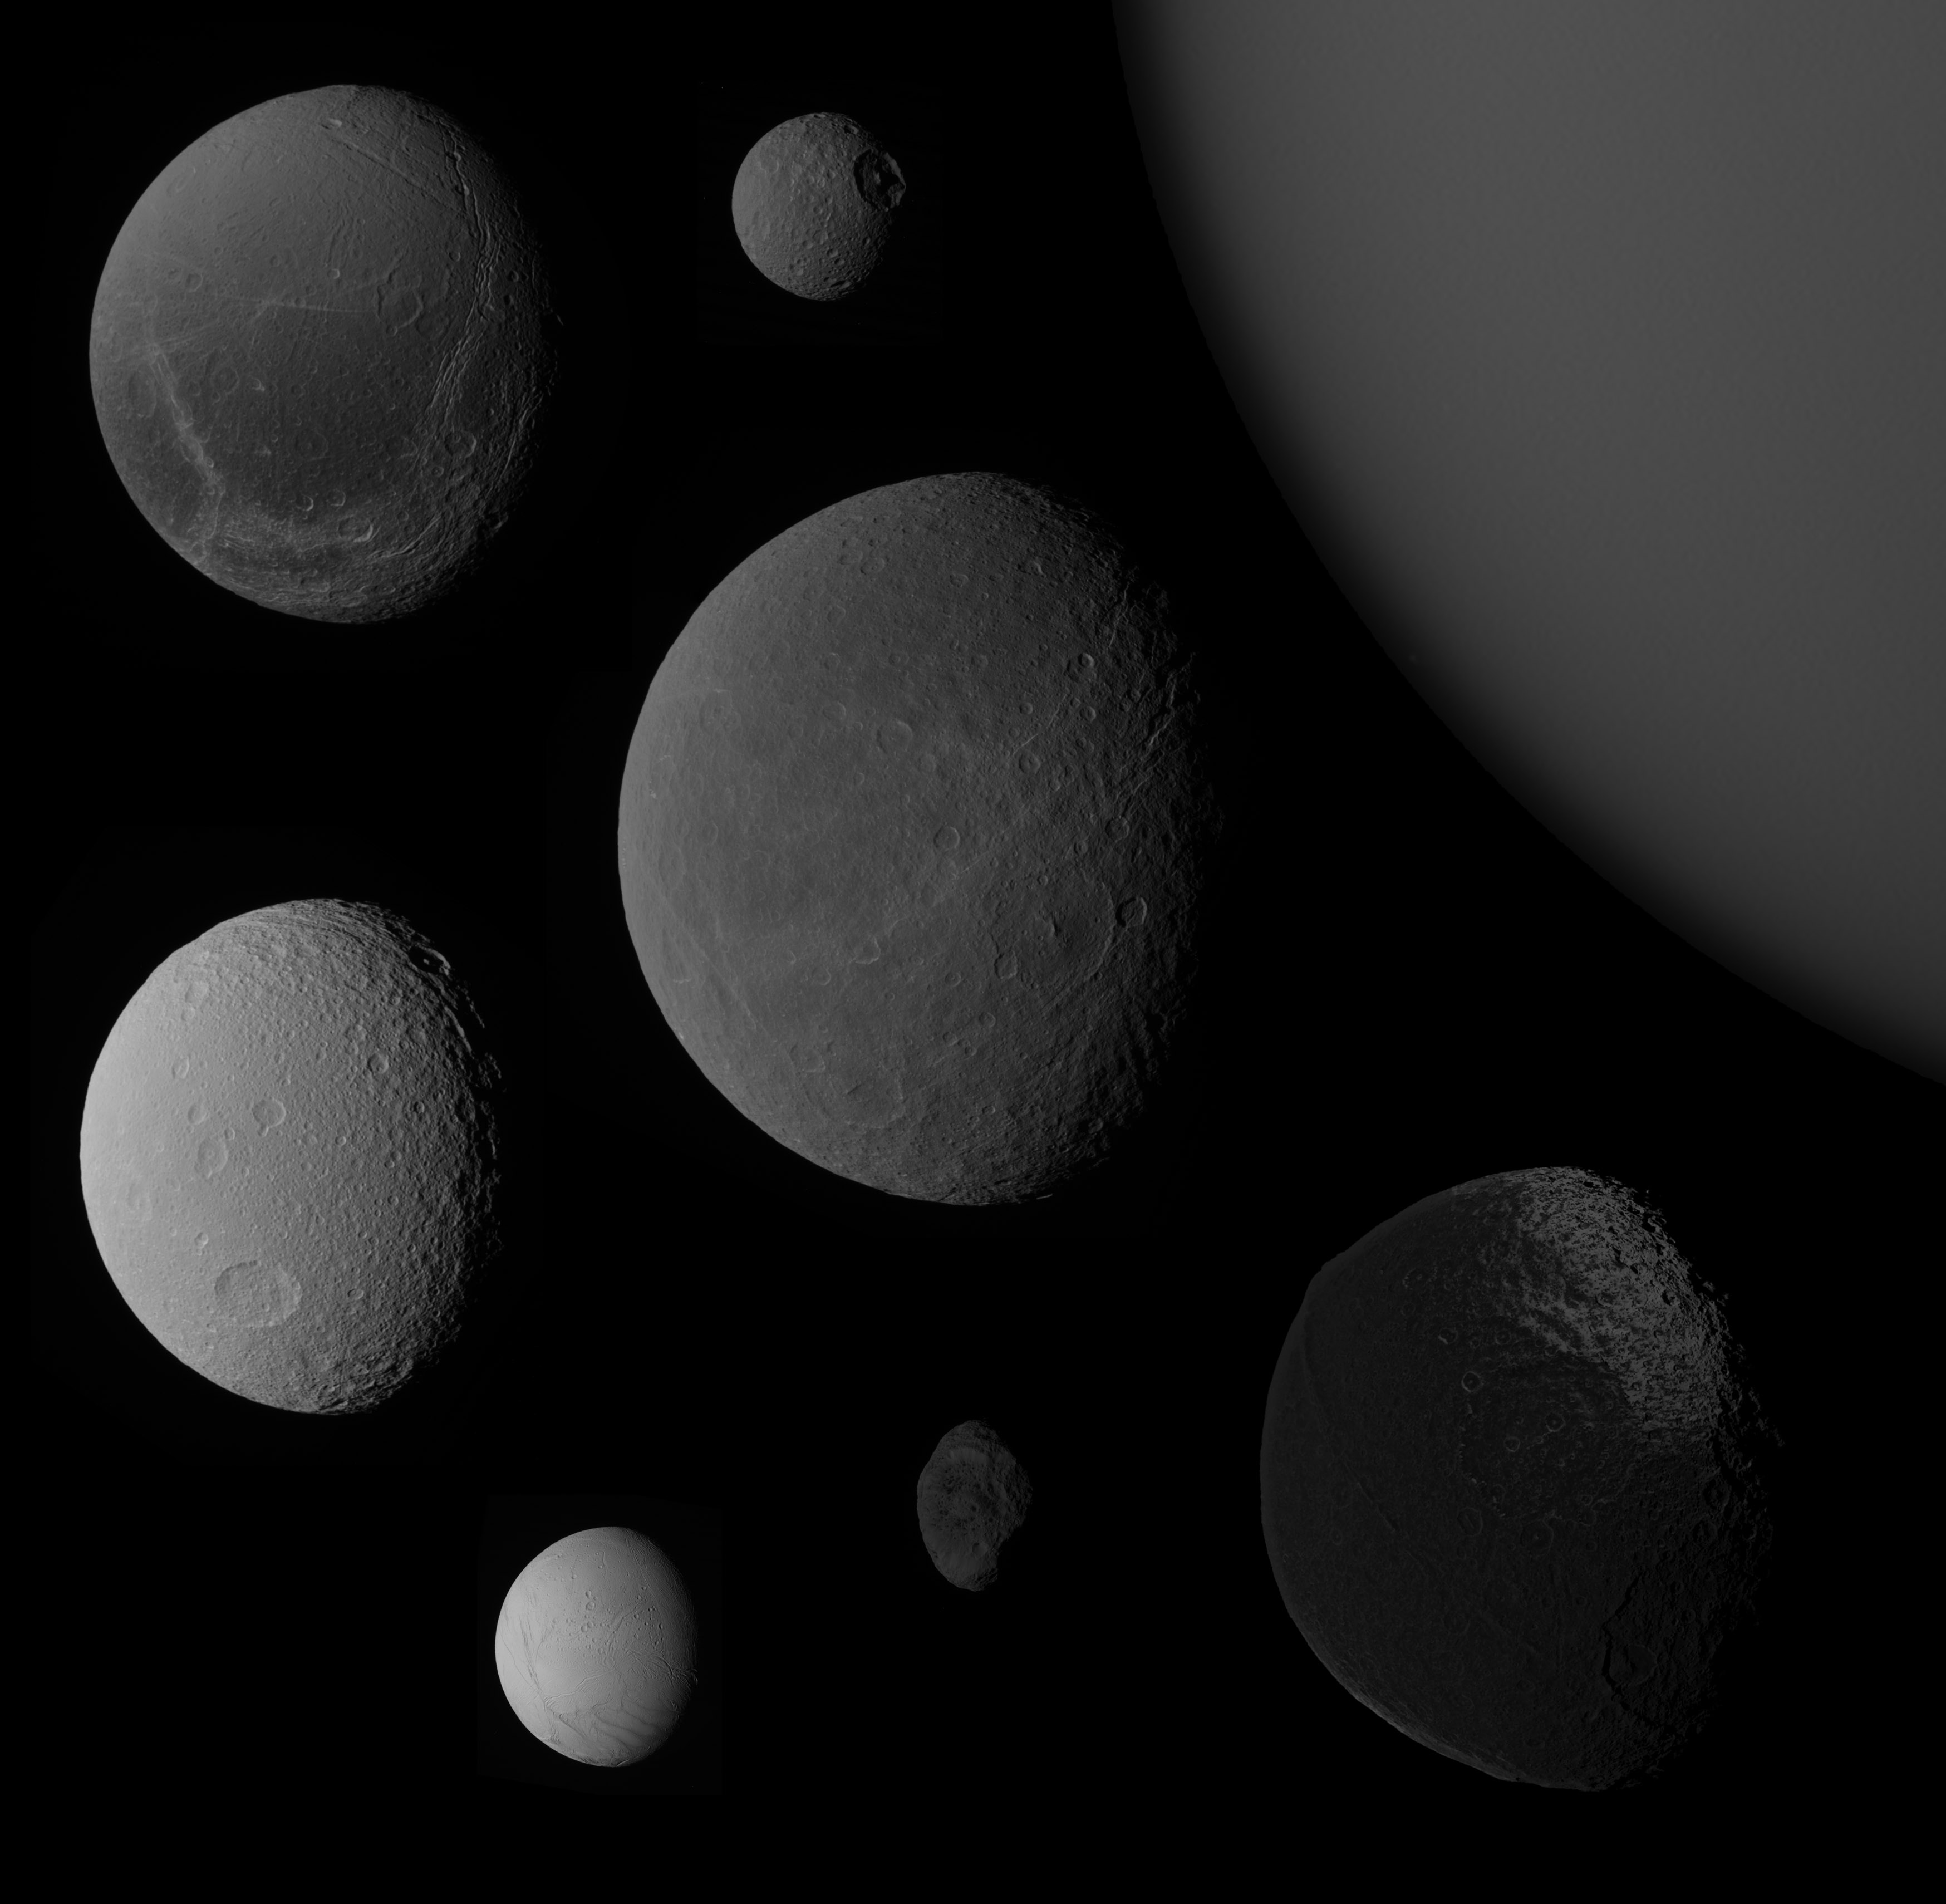 Saturn's moons at a common phase angle and a common scale ...